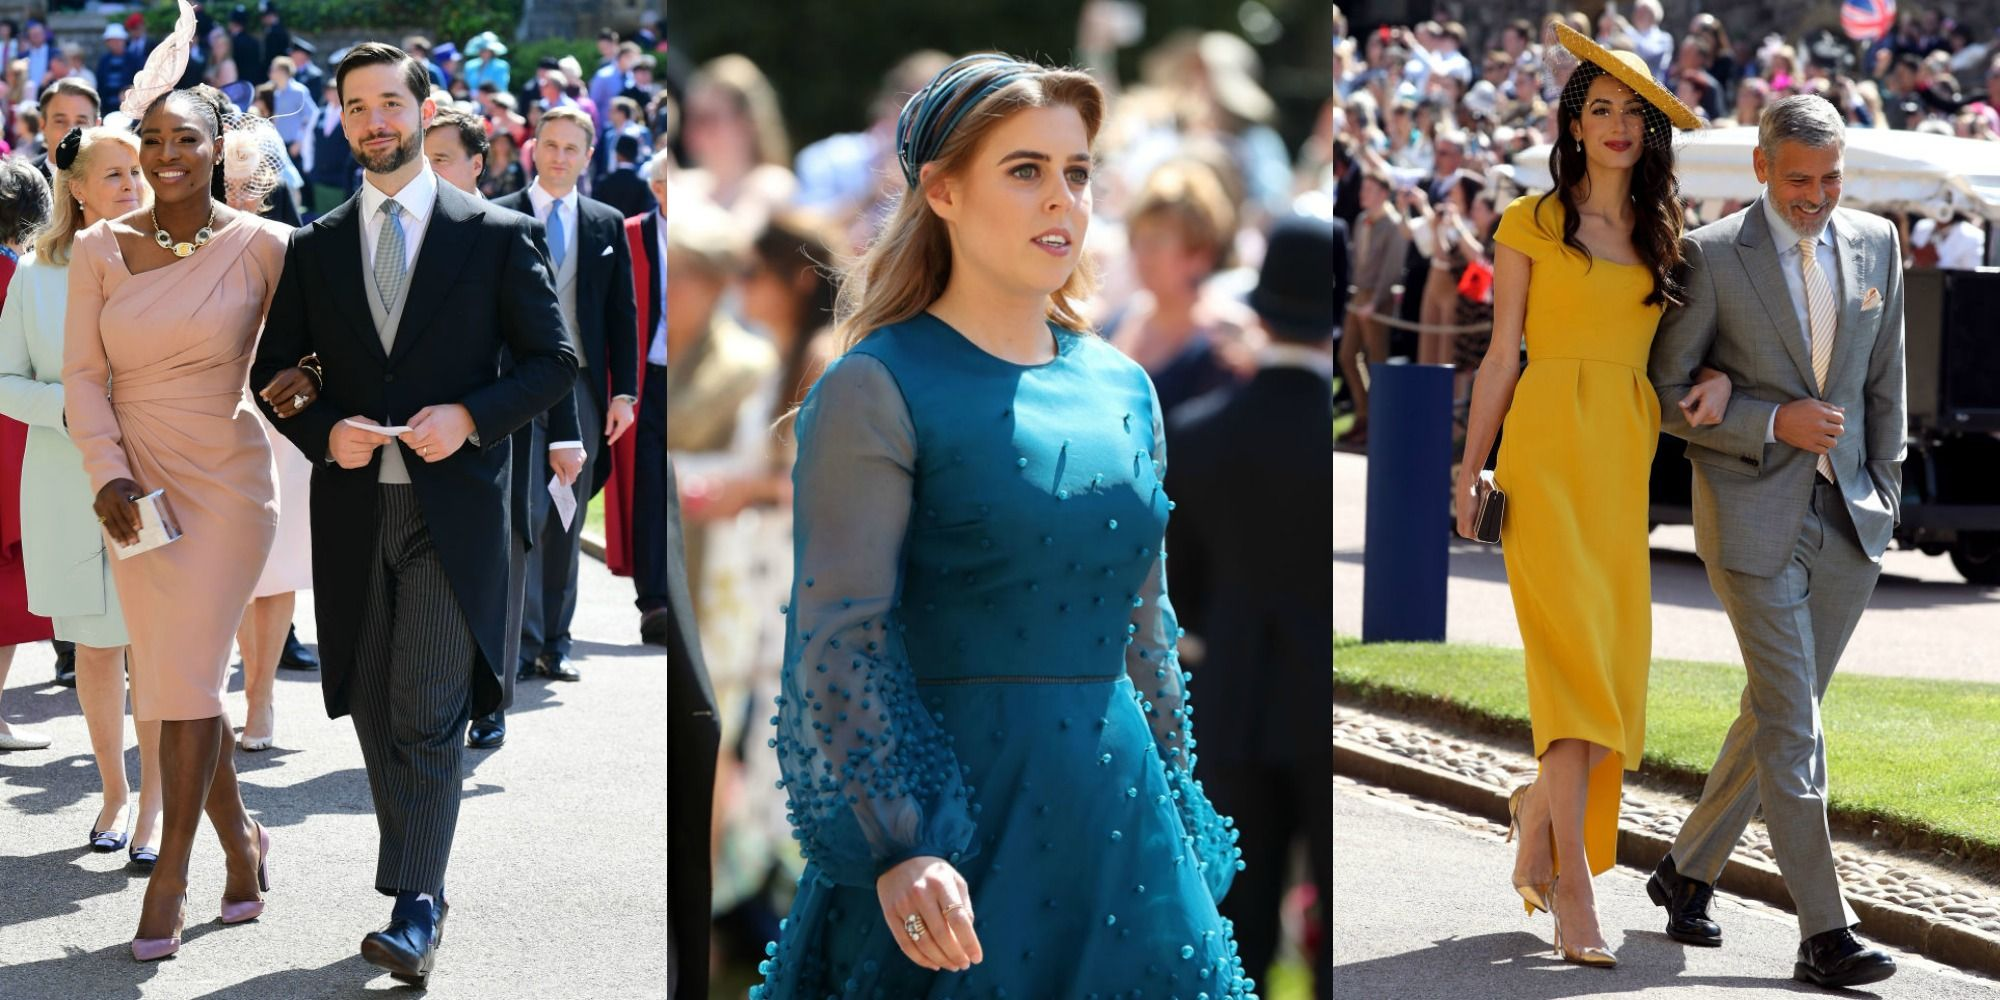 Royal Wedding 2018 Celebrity Guest List Famous Guests At The Royal